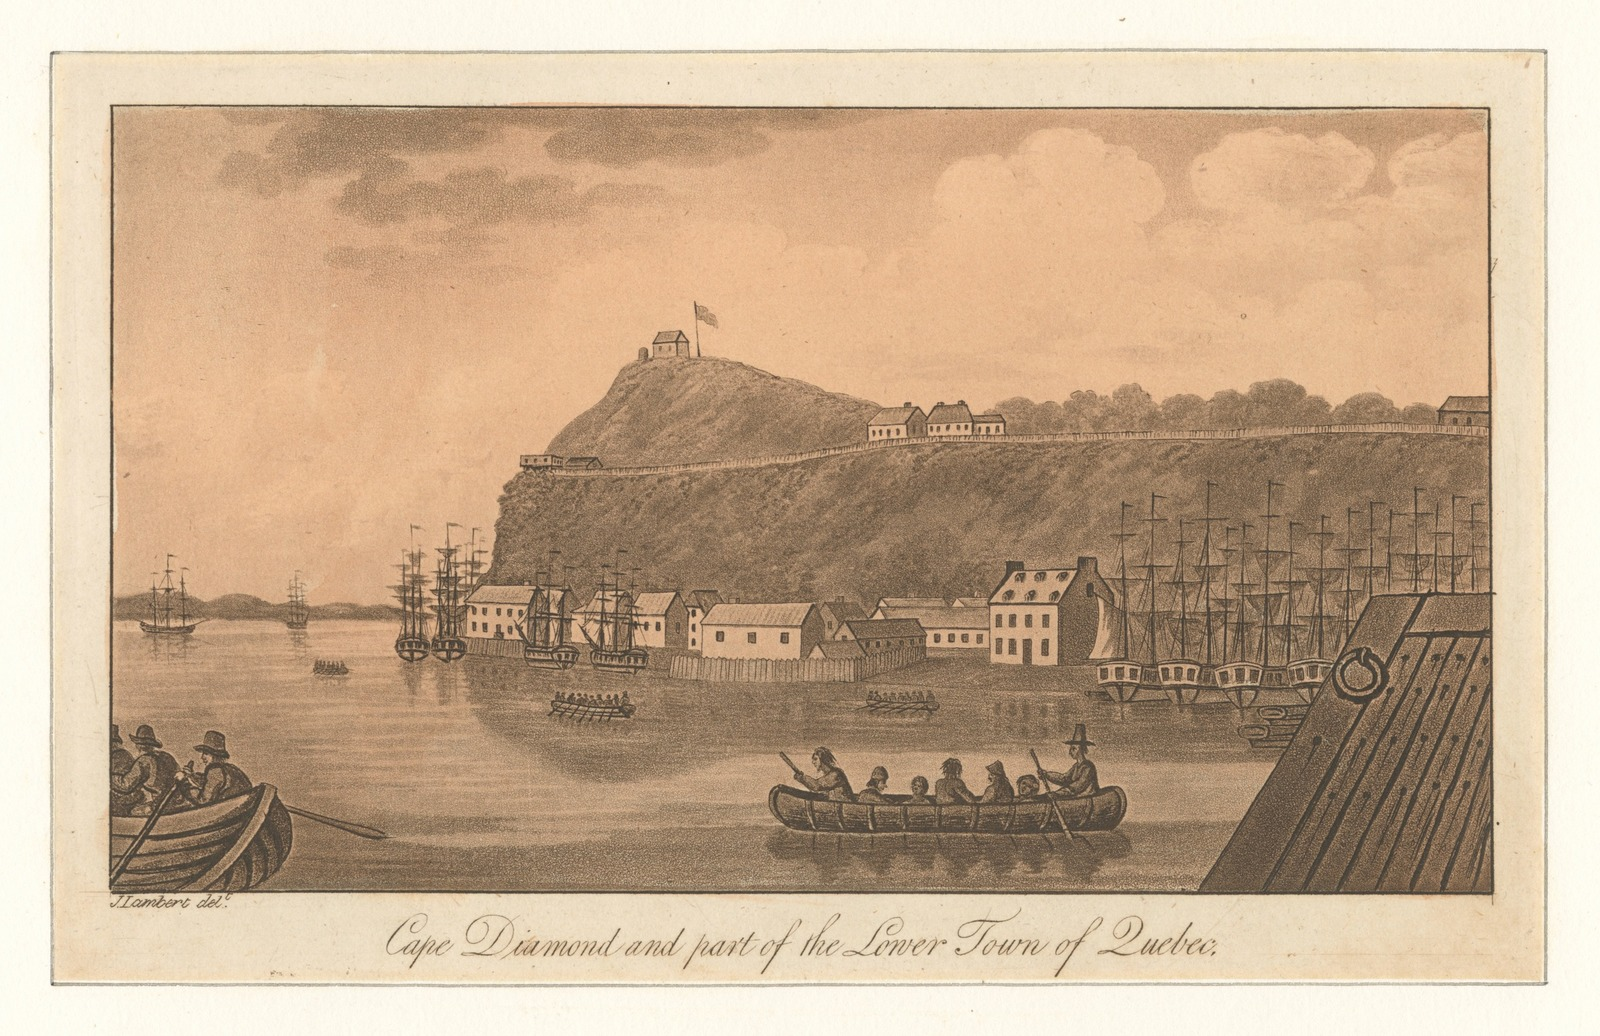 Cape Diamond and part of the lower town of Quebec